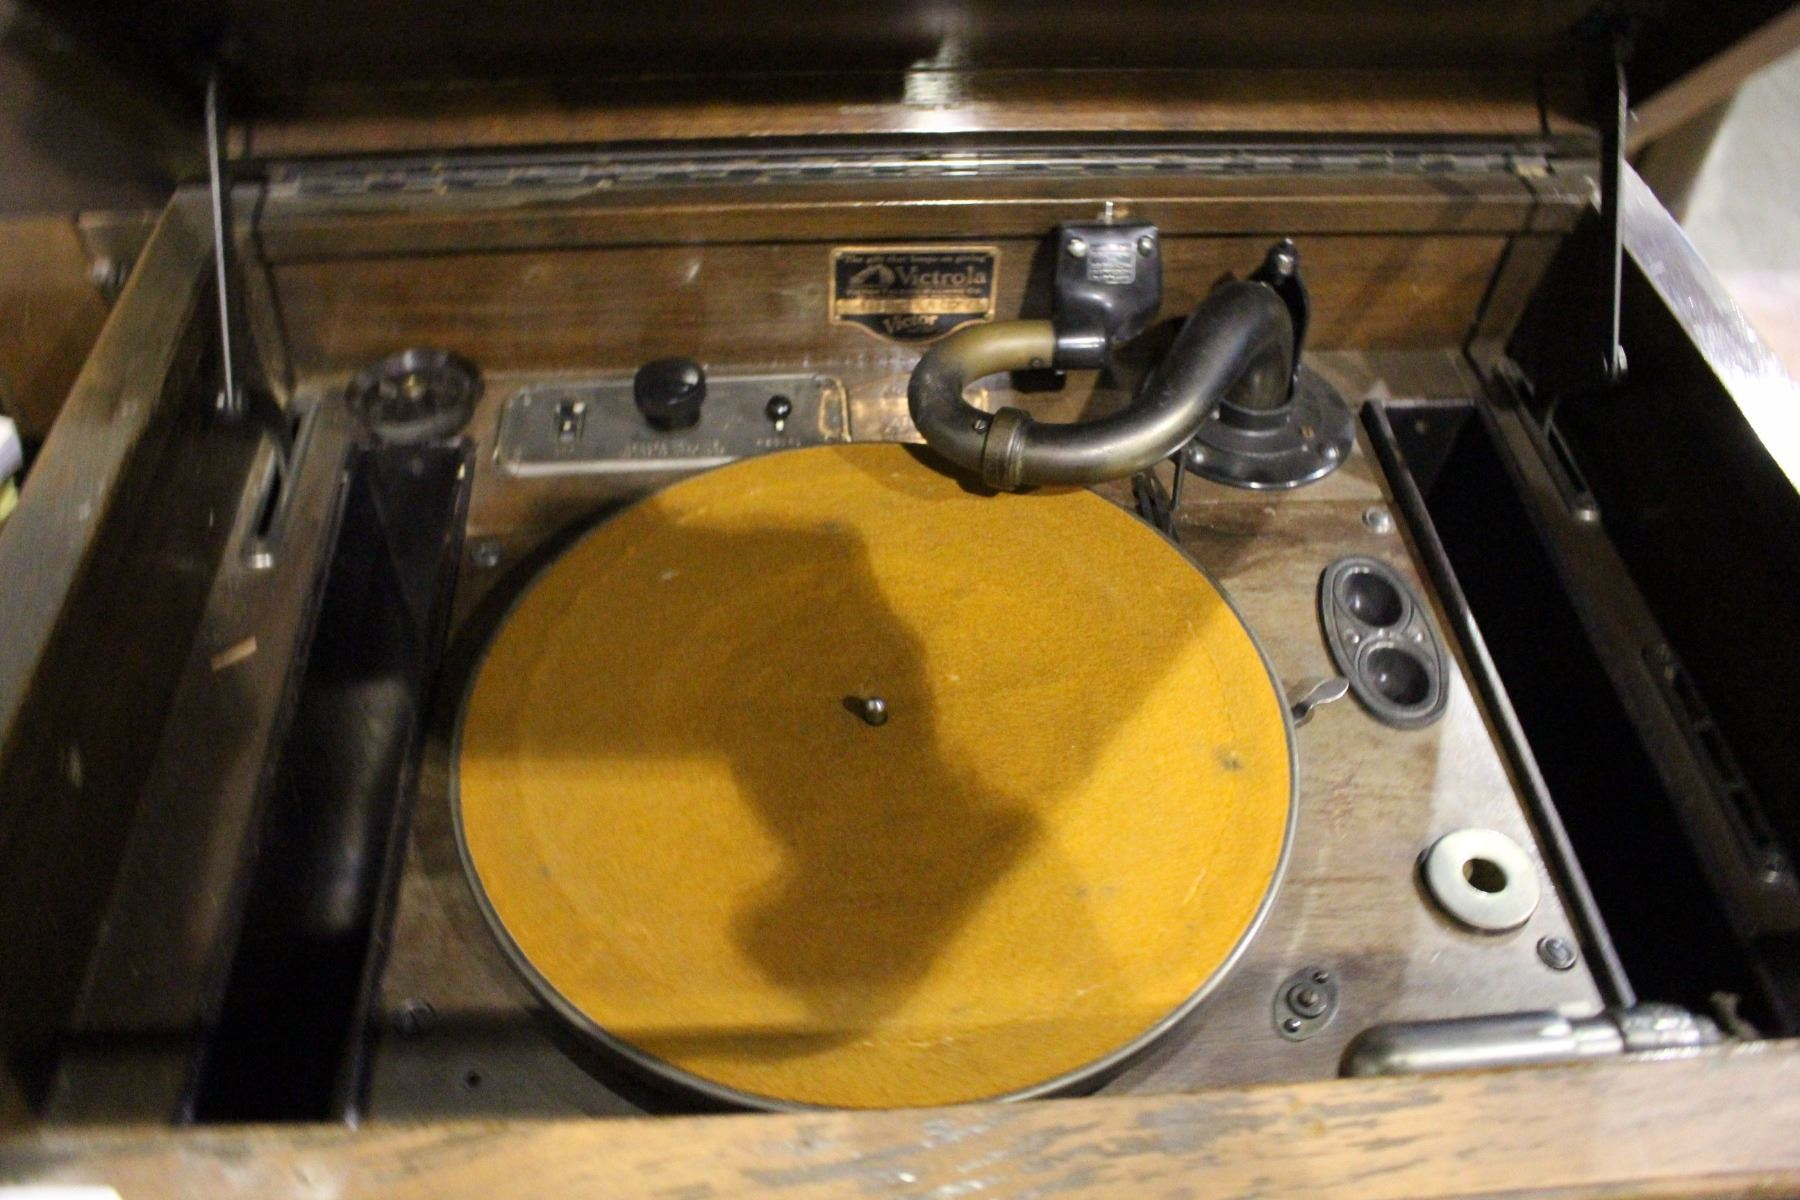 RCA VICTOR ELECTROLA RECORD PLAYER (ALSO SPEAKER FOR RADIO